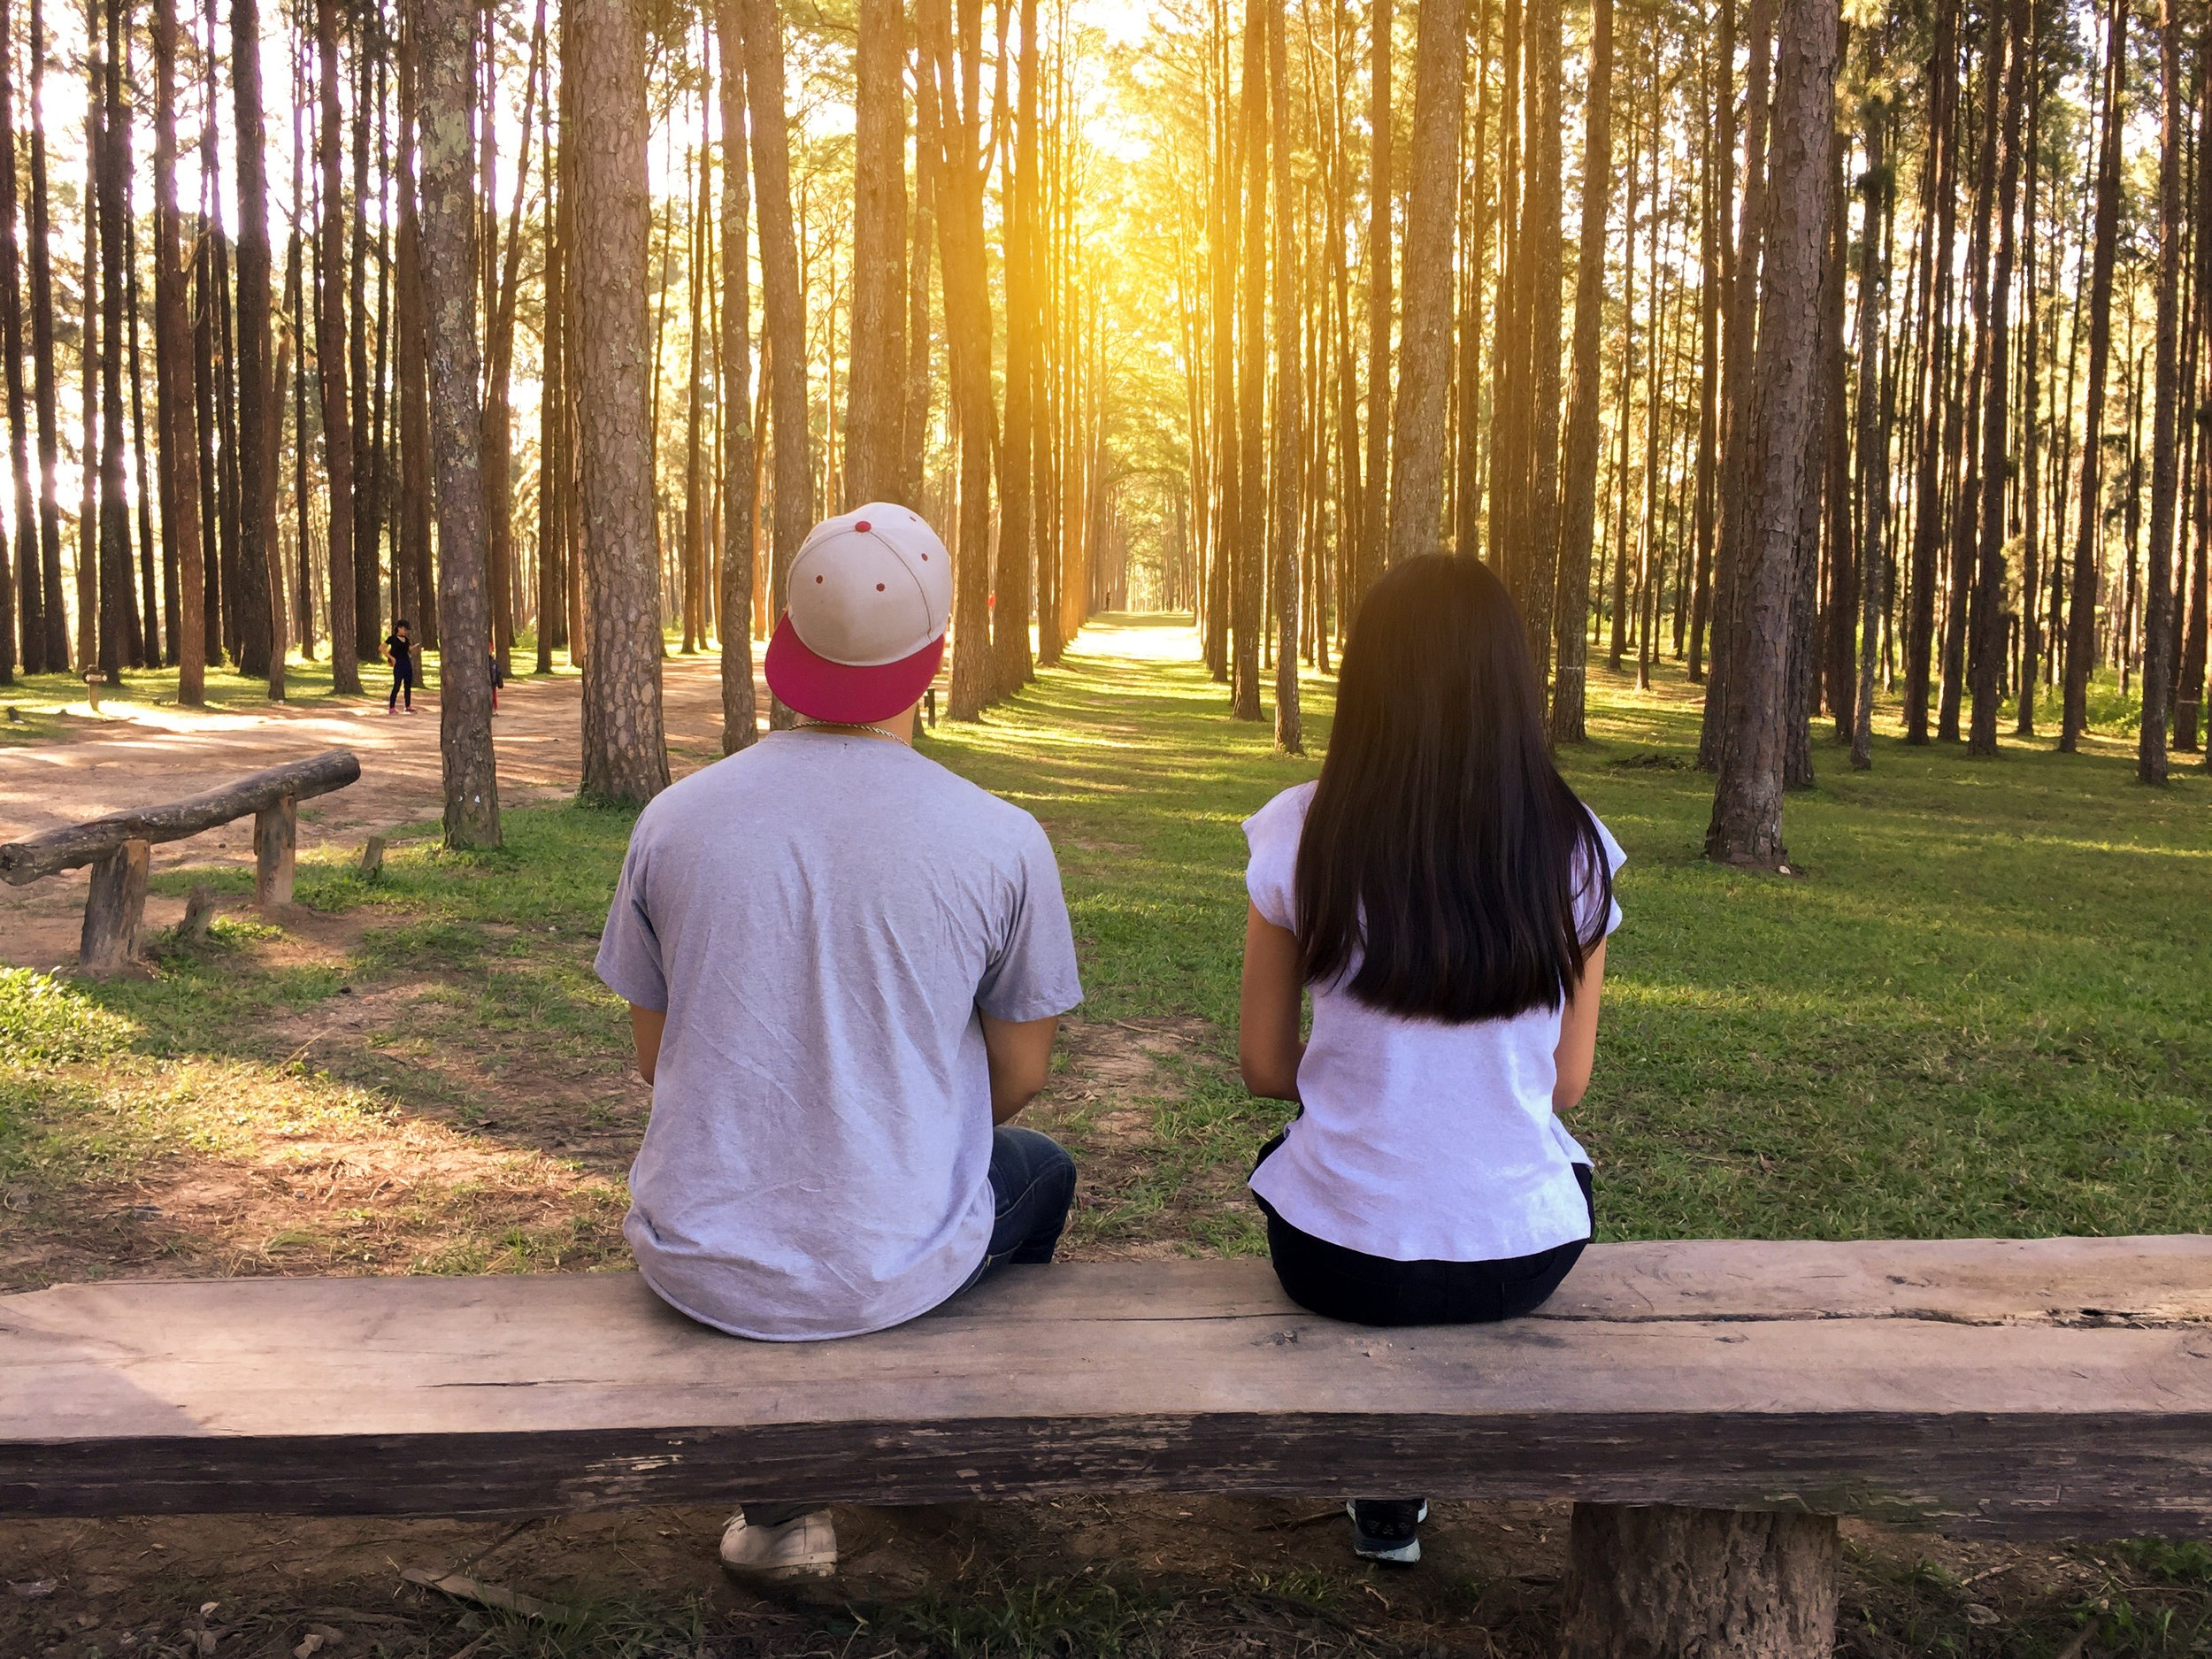 bench-countryside-couple-450050.jpg